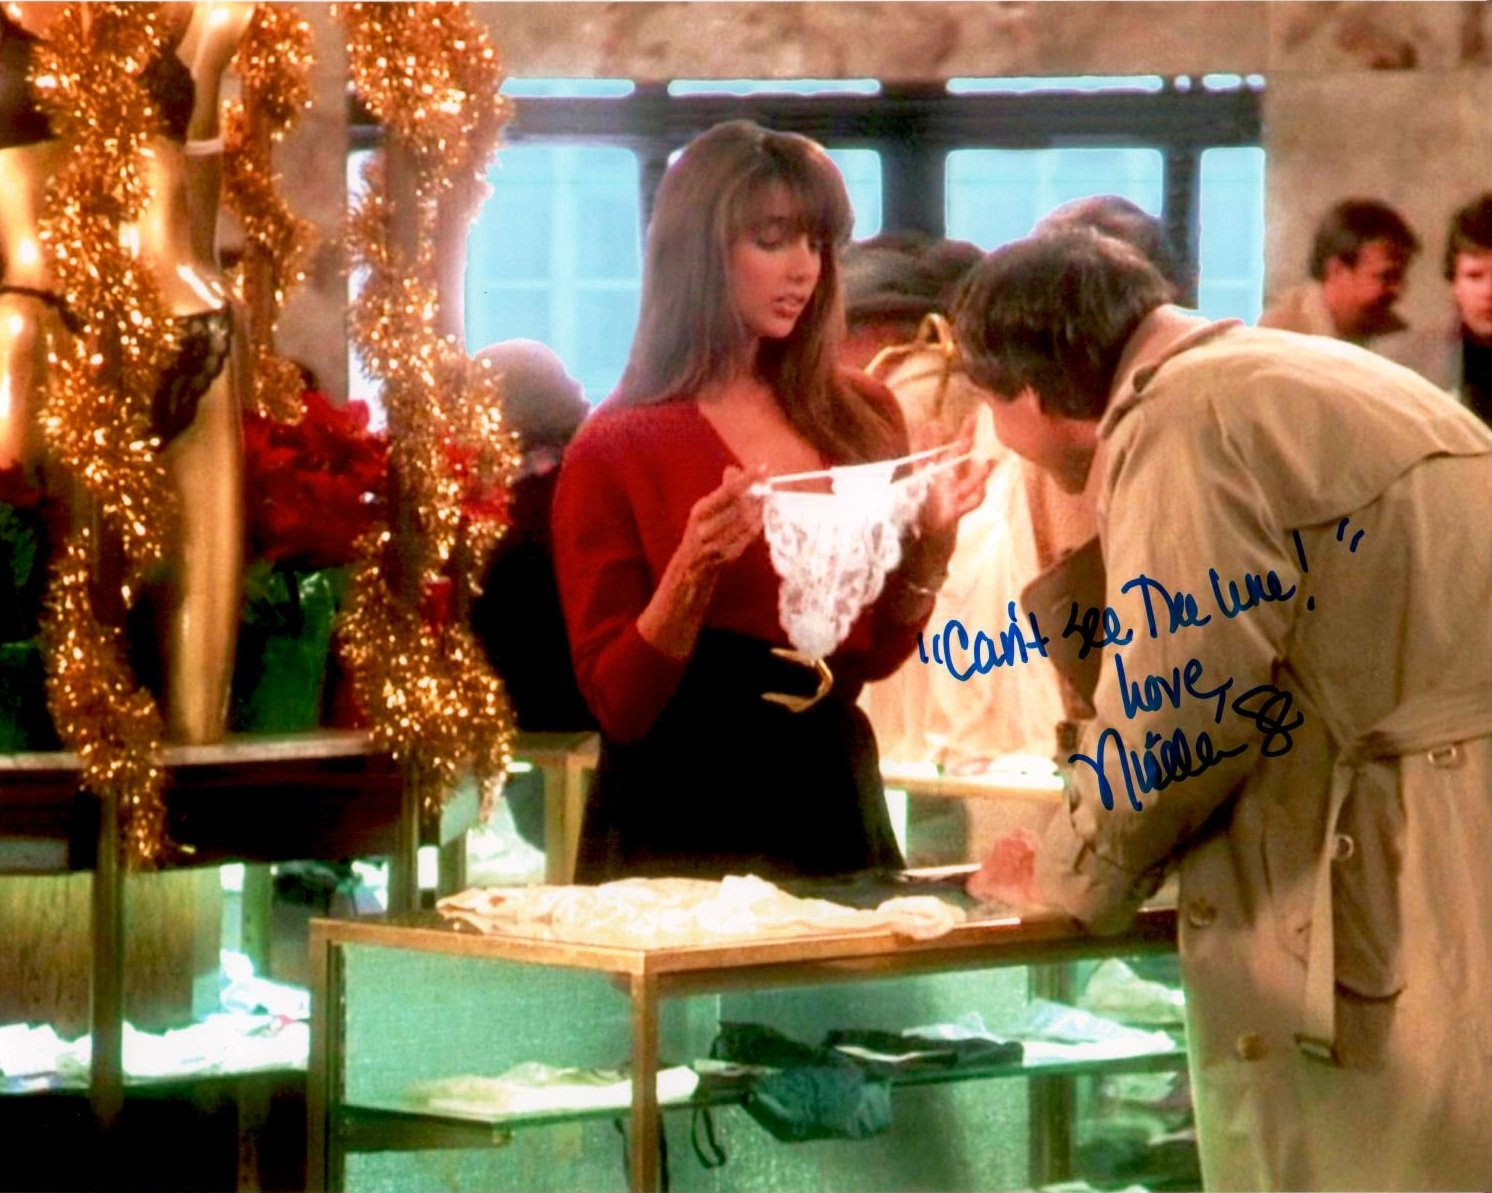 NICOLETTE SCORSESE Autographed/Signed Chevy Chase/Christmas Vacation 8x10 Photo with Special Inscription 'Can't See the Line' NICOLETTE SCORSESE Autographed/Signed Chevy Chase/Christmas Vacation 8x10 Photo with Special Inscription Can' t See the Line